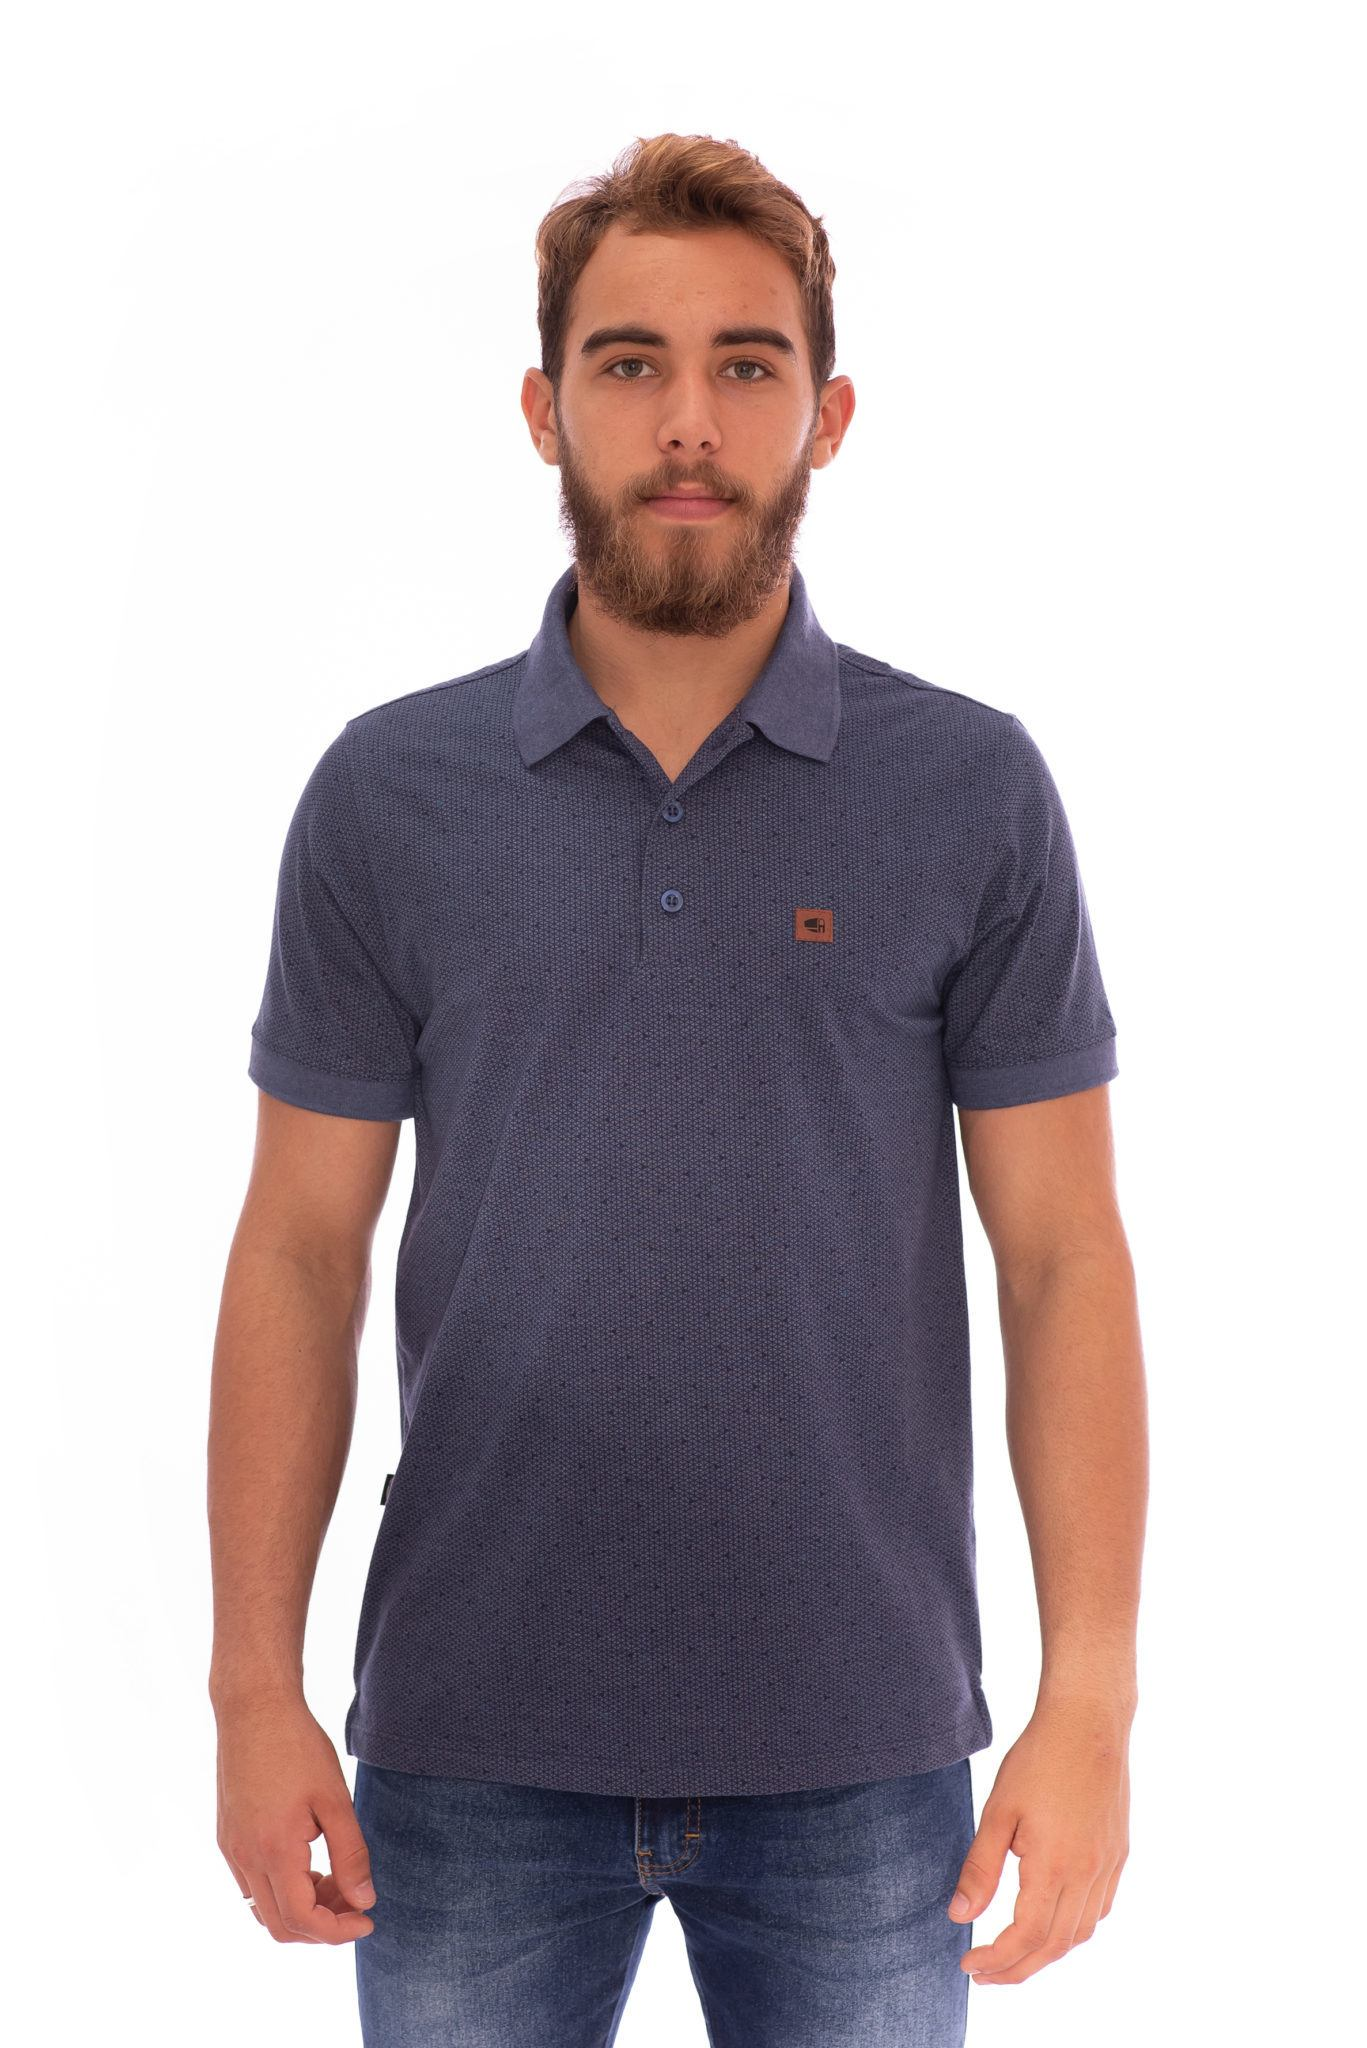 CAMISA GOLA POLO AEE SURF SLIM CONNECT MARINHO REF. 117